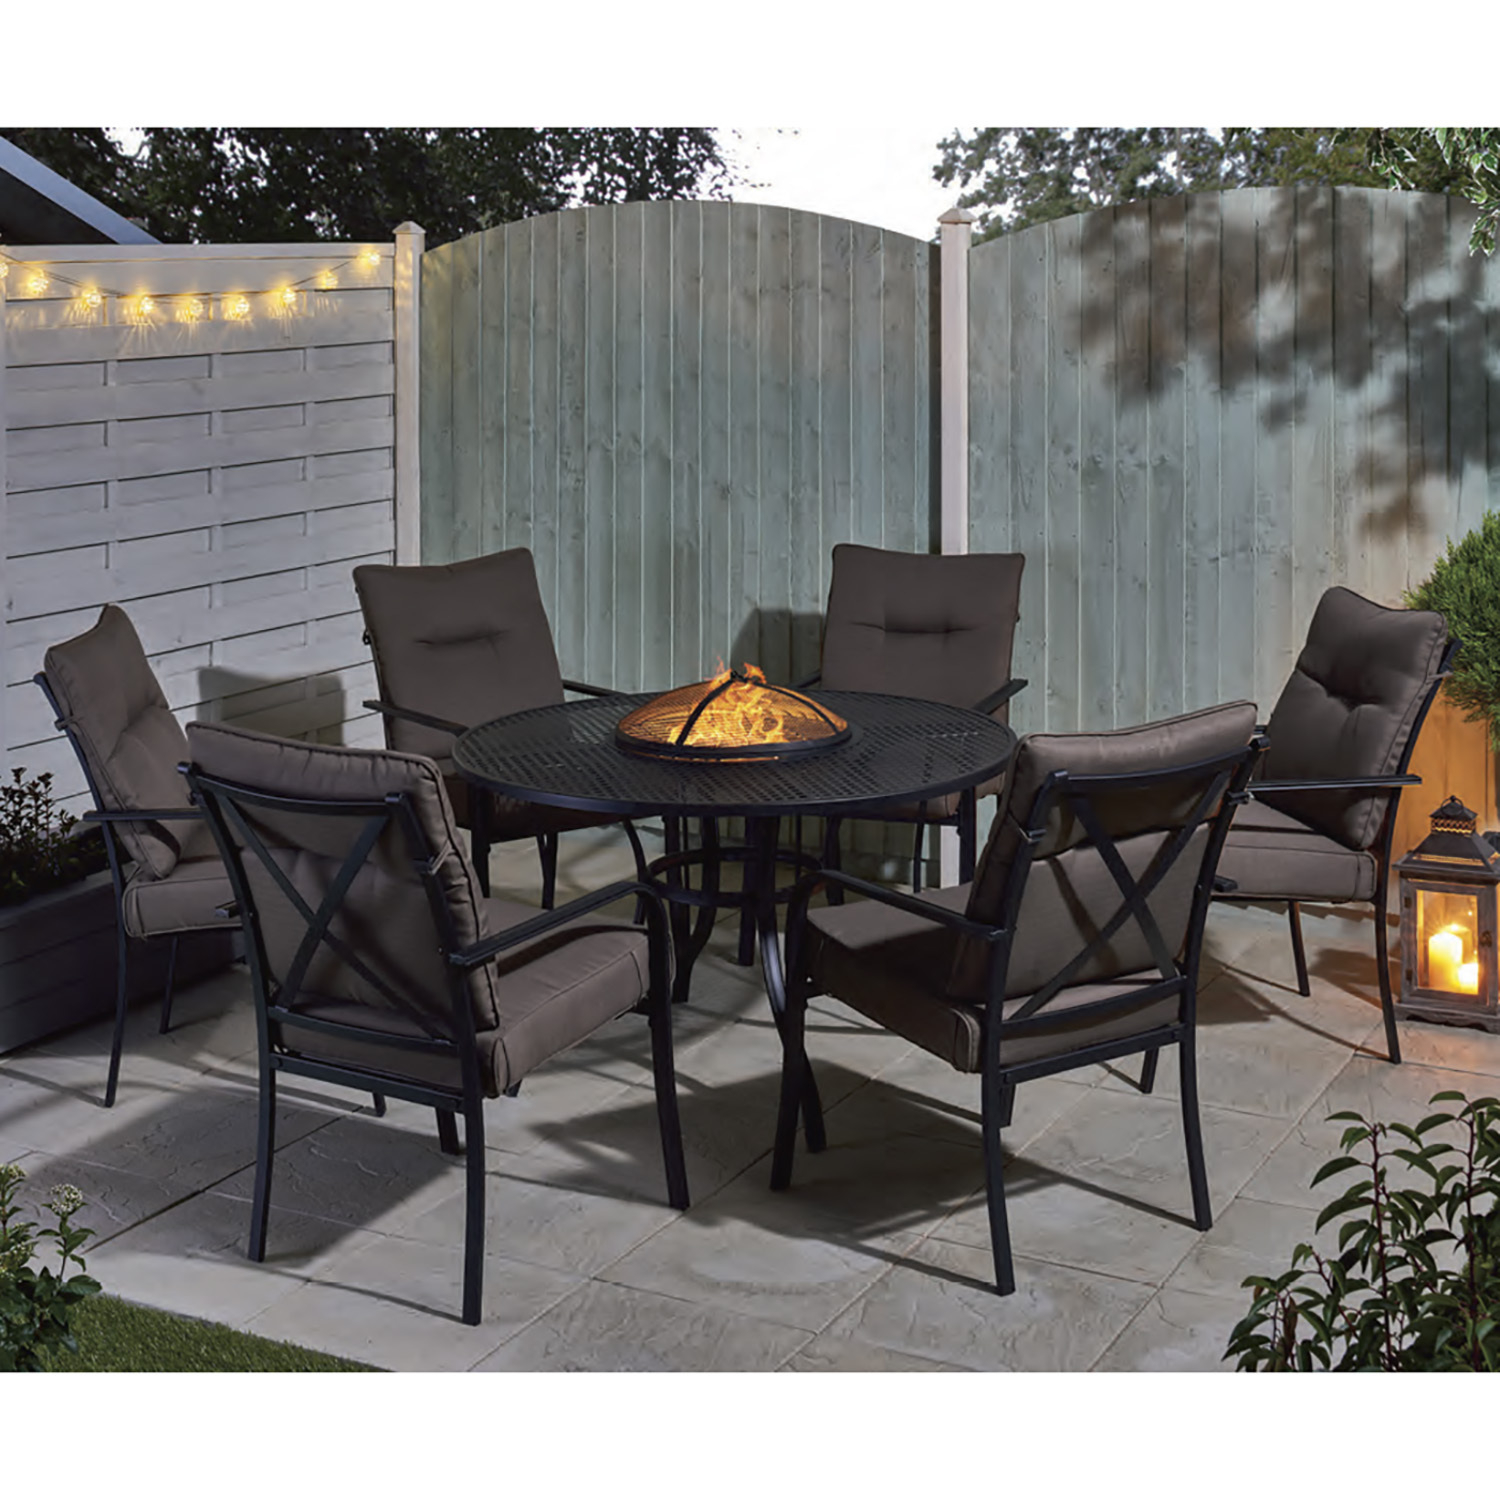 Catalonia Fire Pit And Ice Bucket Dining Set throughout size 1500 X 1500